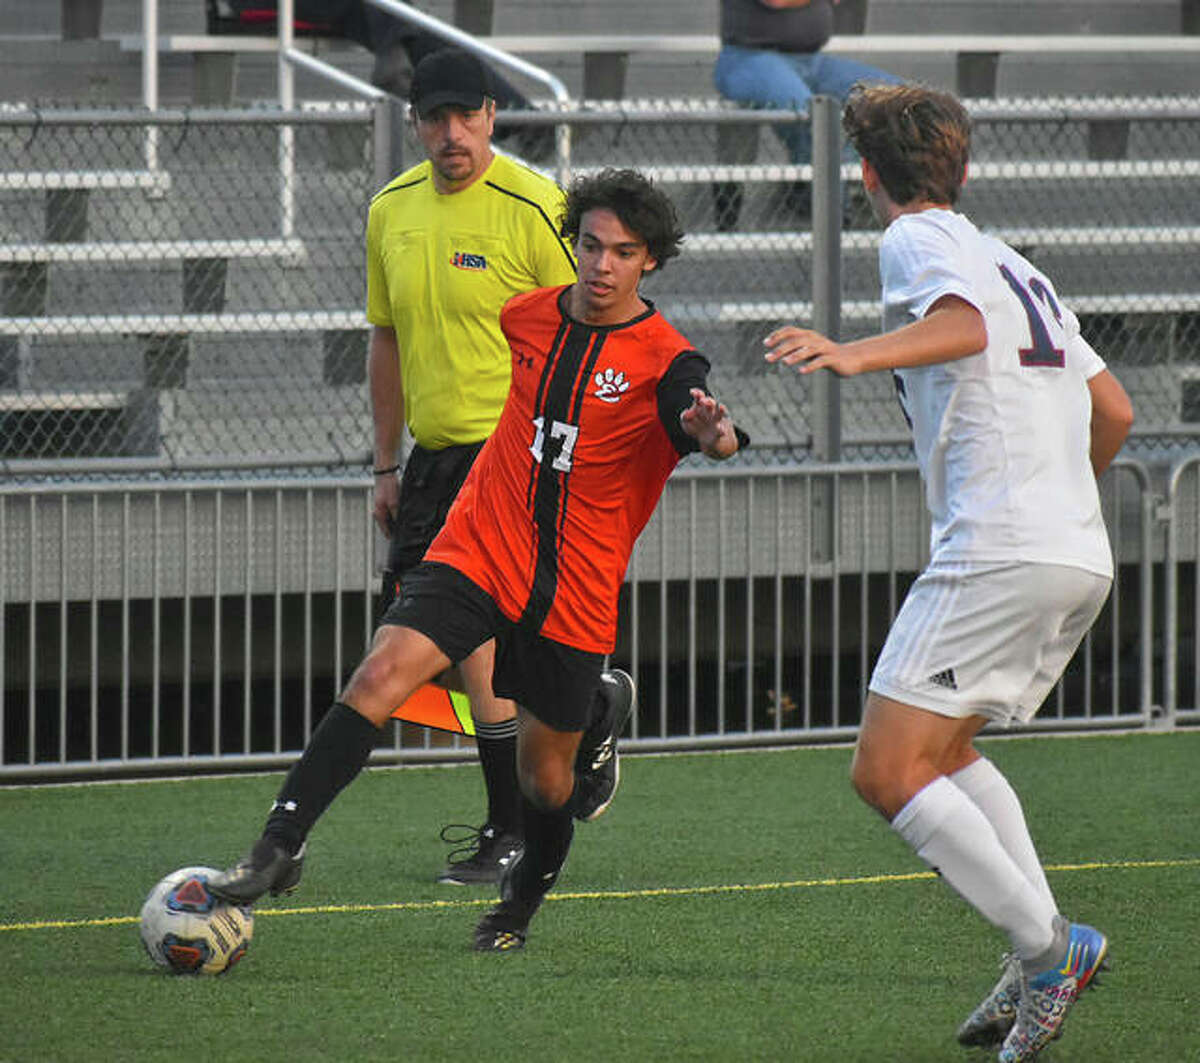 Edwardsville's Wyatt Erber, left, crosses a pass into the 18-yard box during the half of Thursday's game against Gibault inside the District 7 Sports Complex.